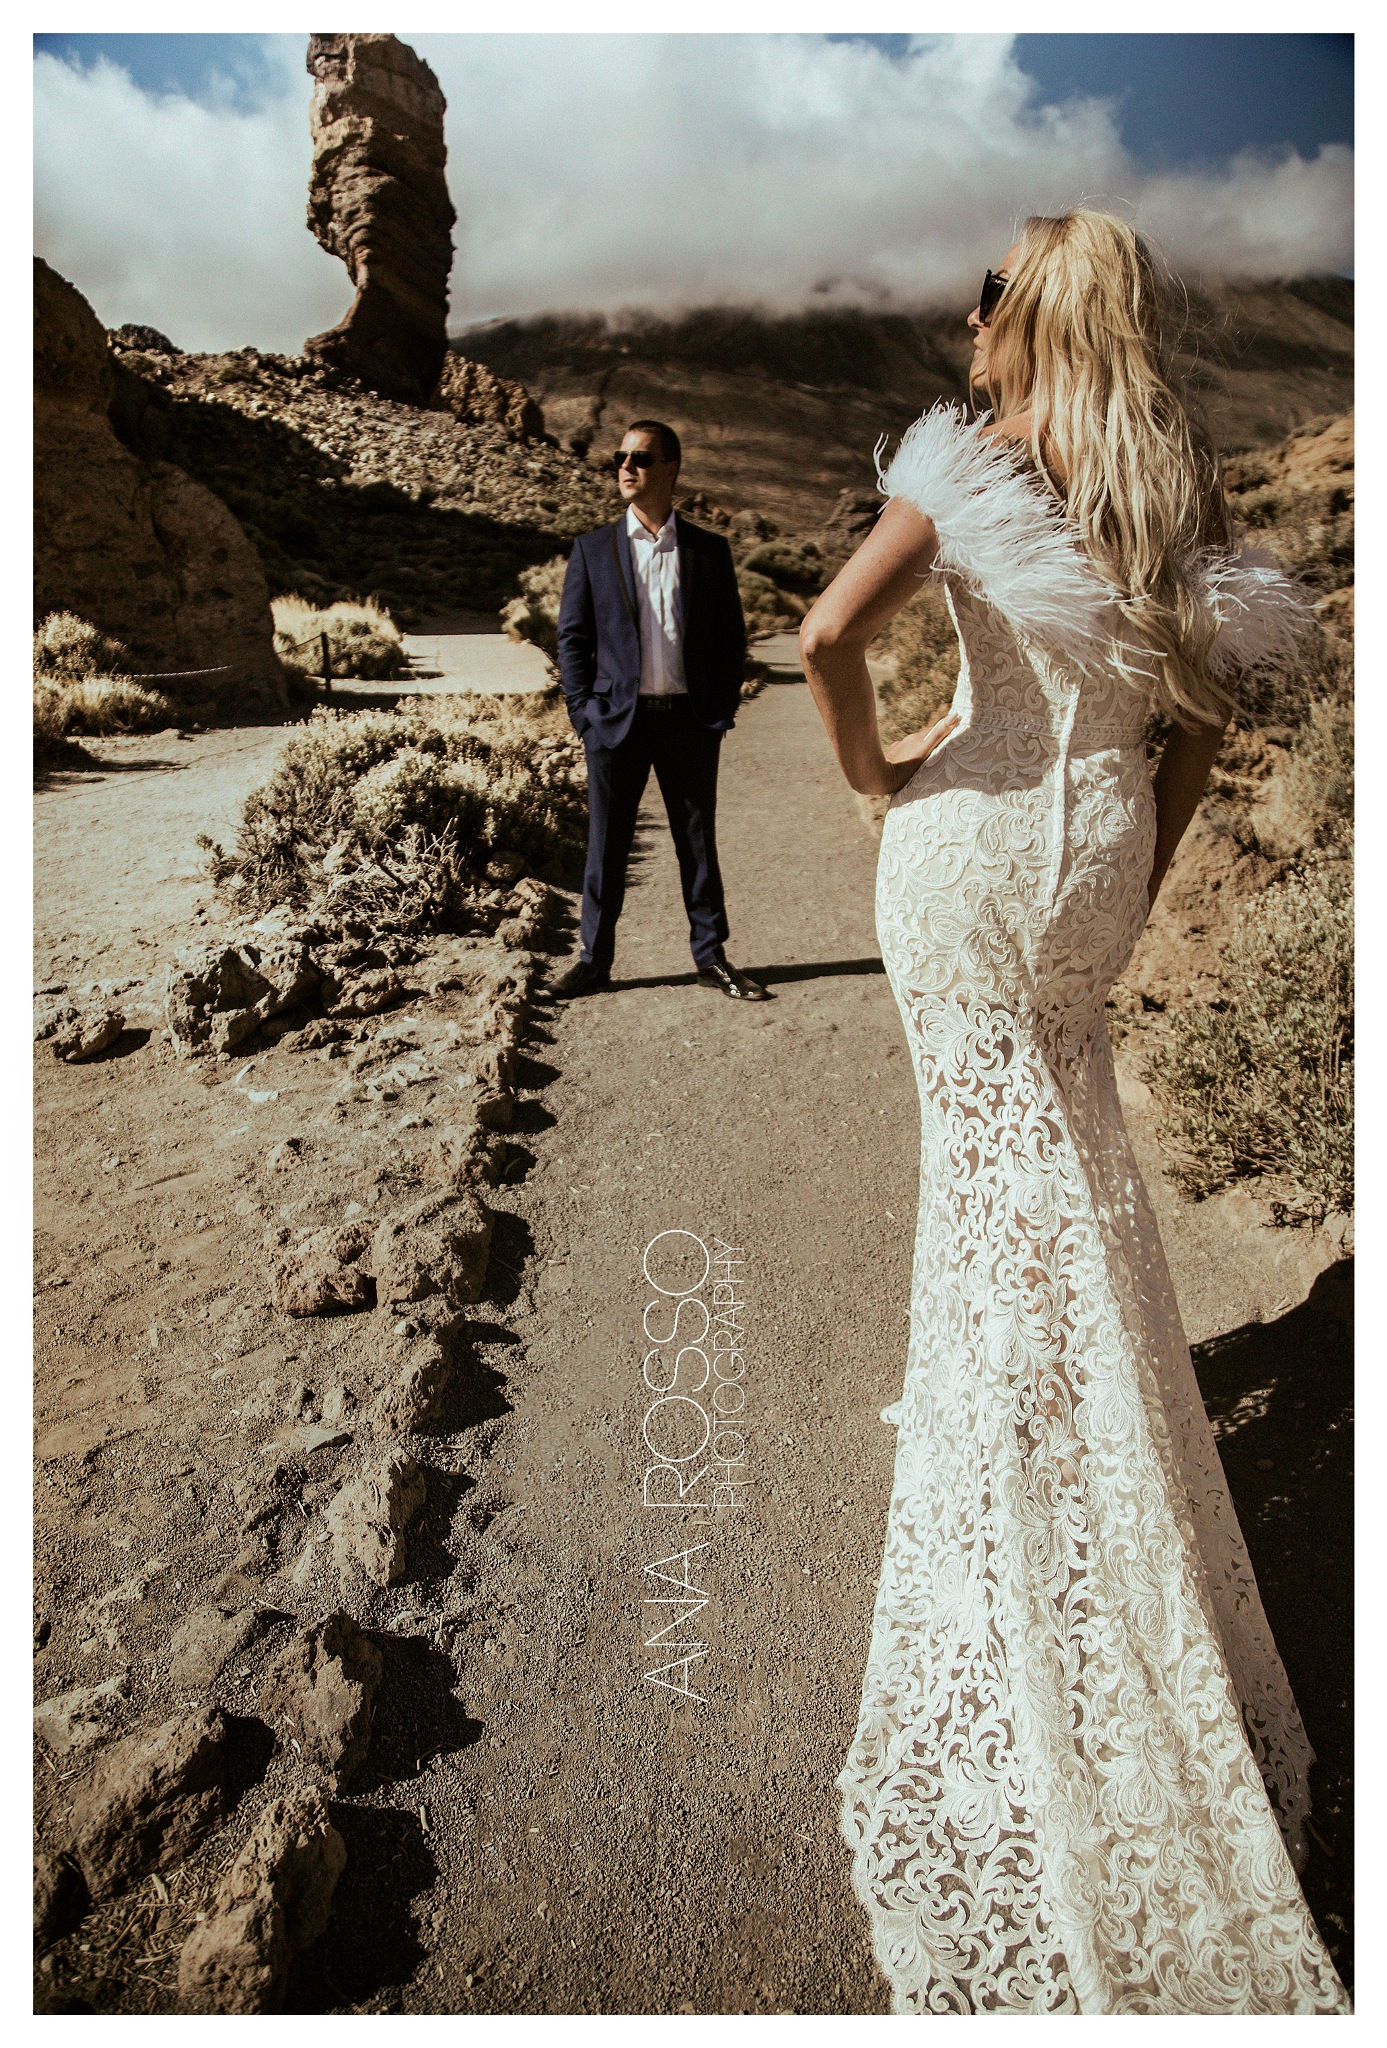 Wedding Photographer Ana Rosso by Photographer